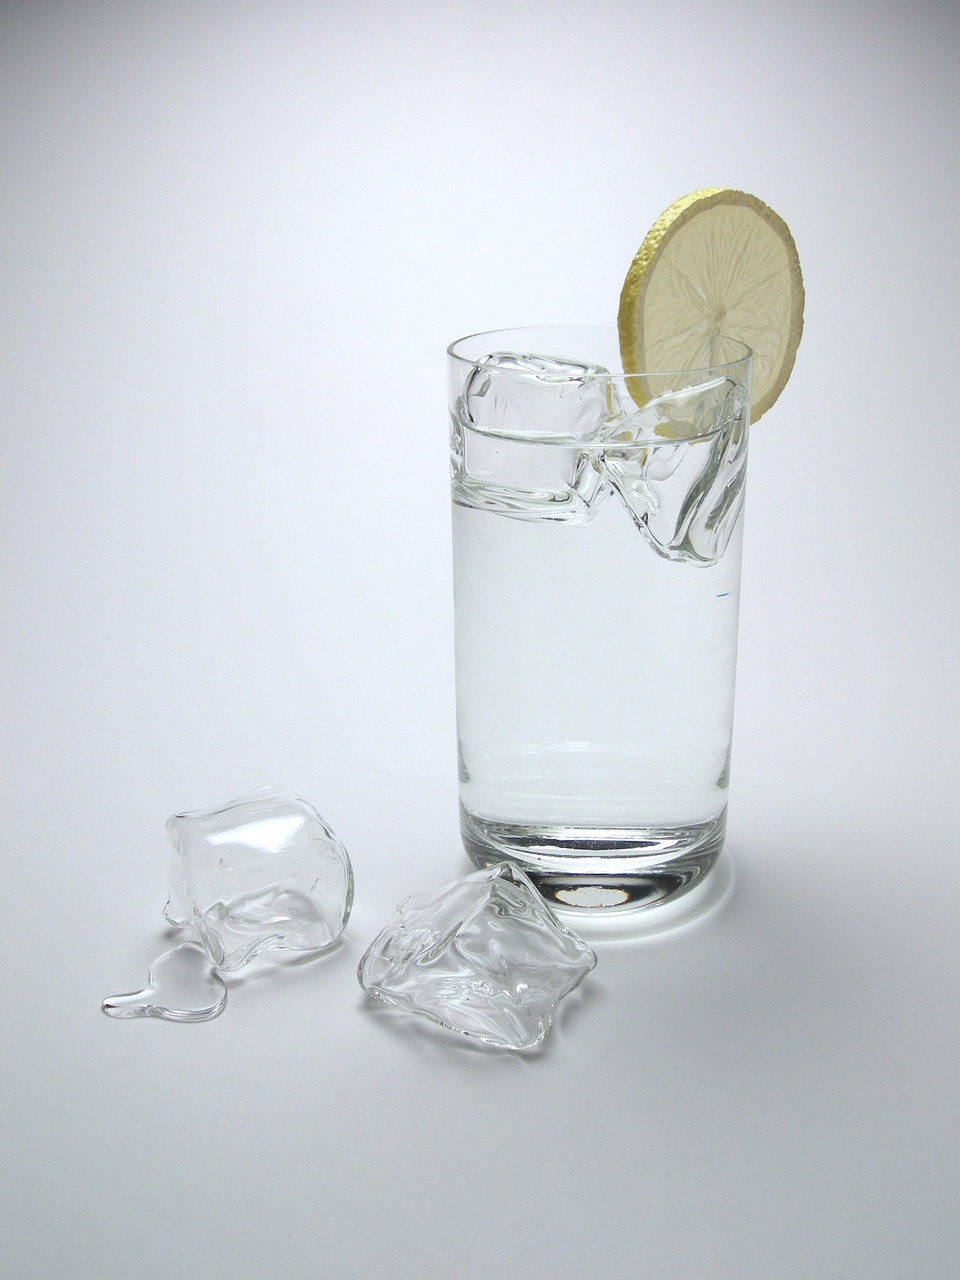 Glass Floating Ice Wedge (1 Piece)